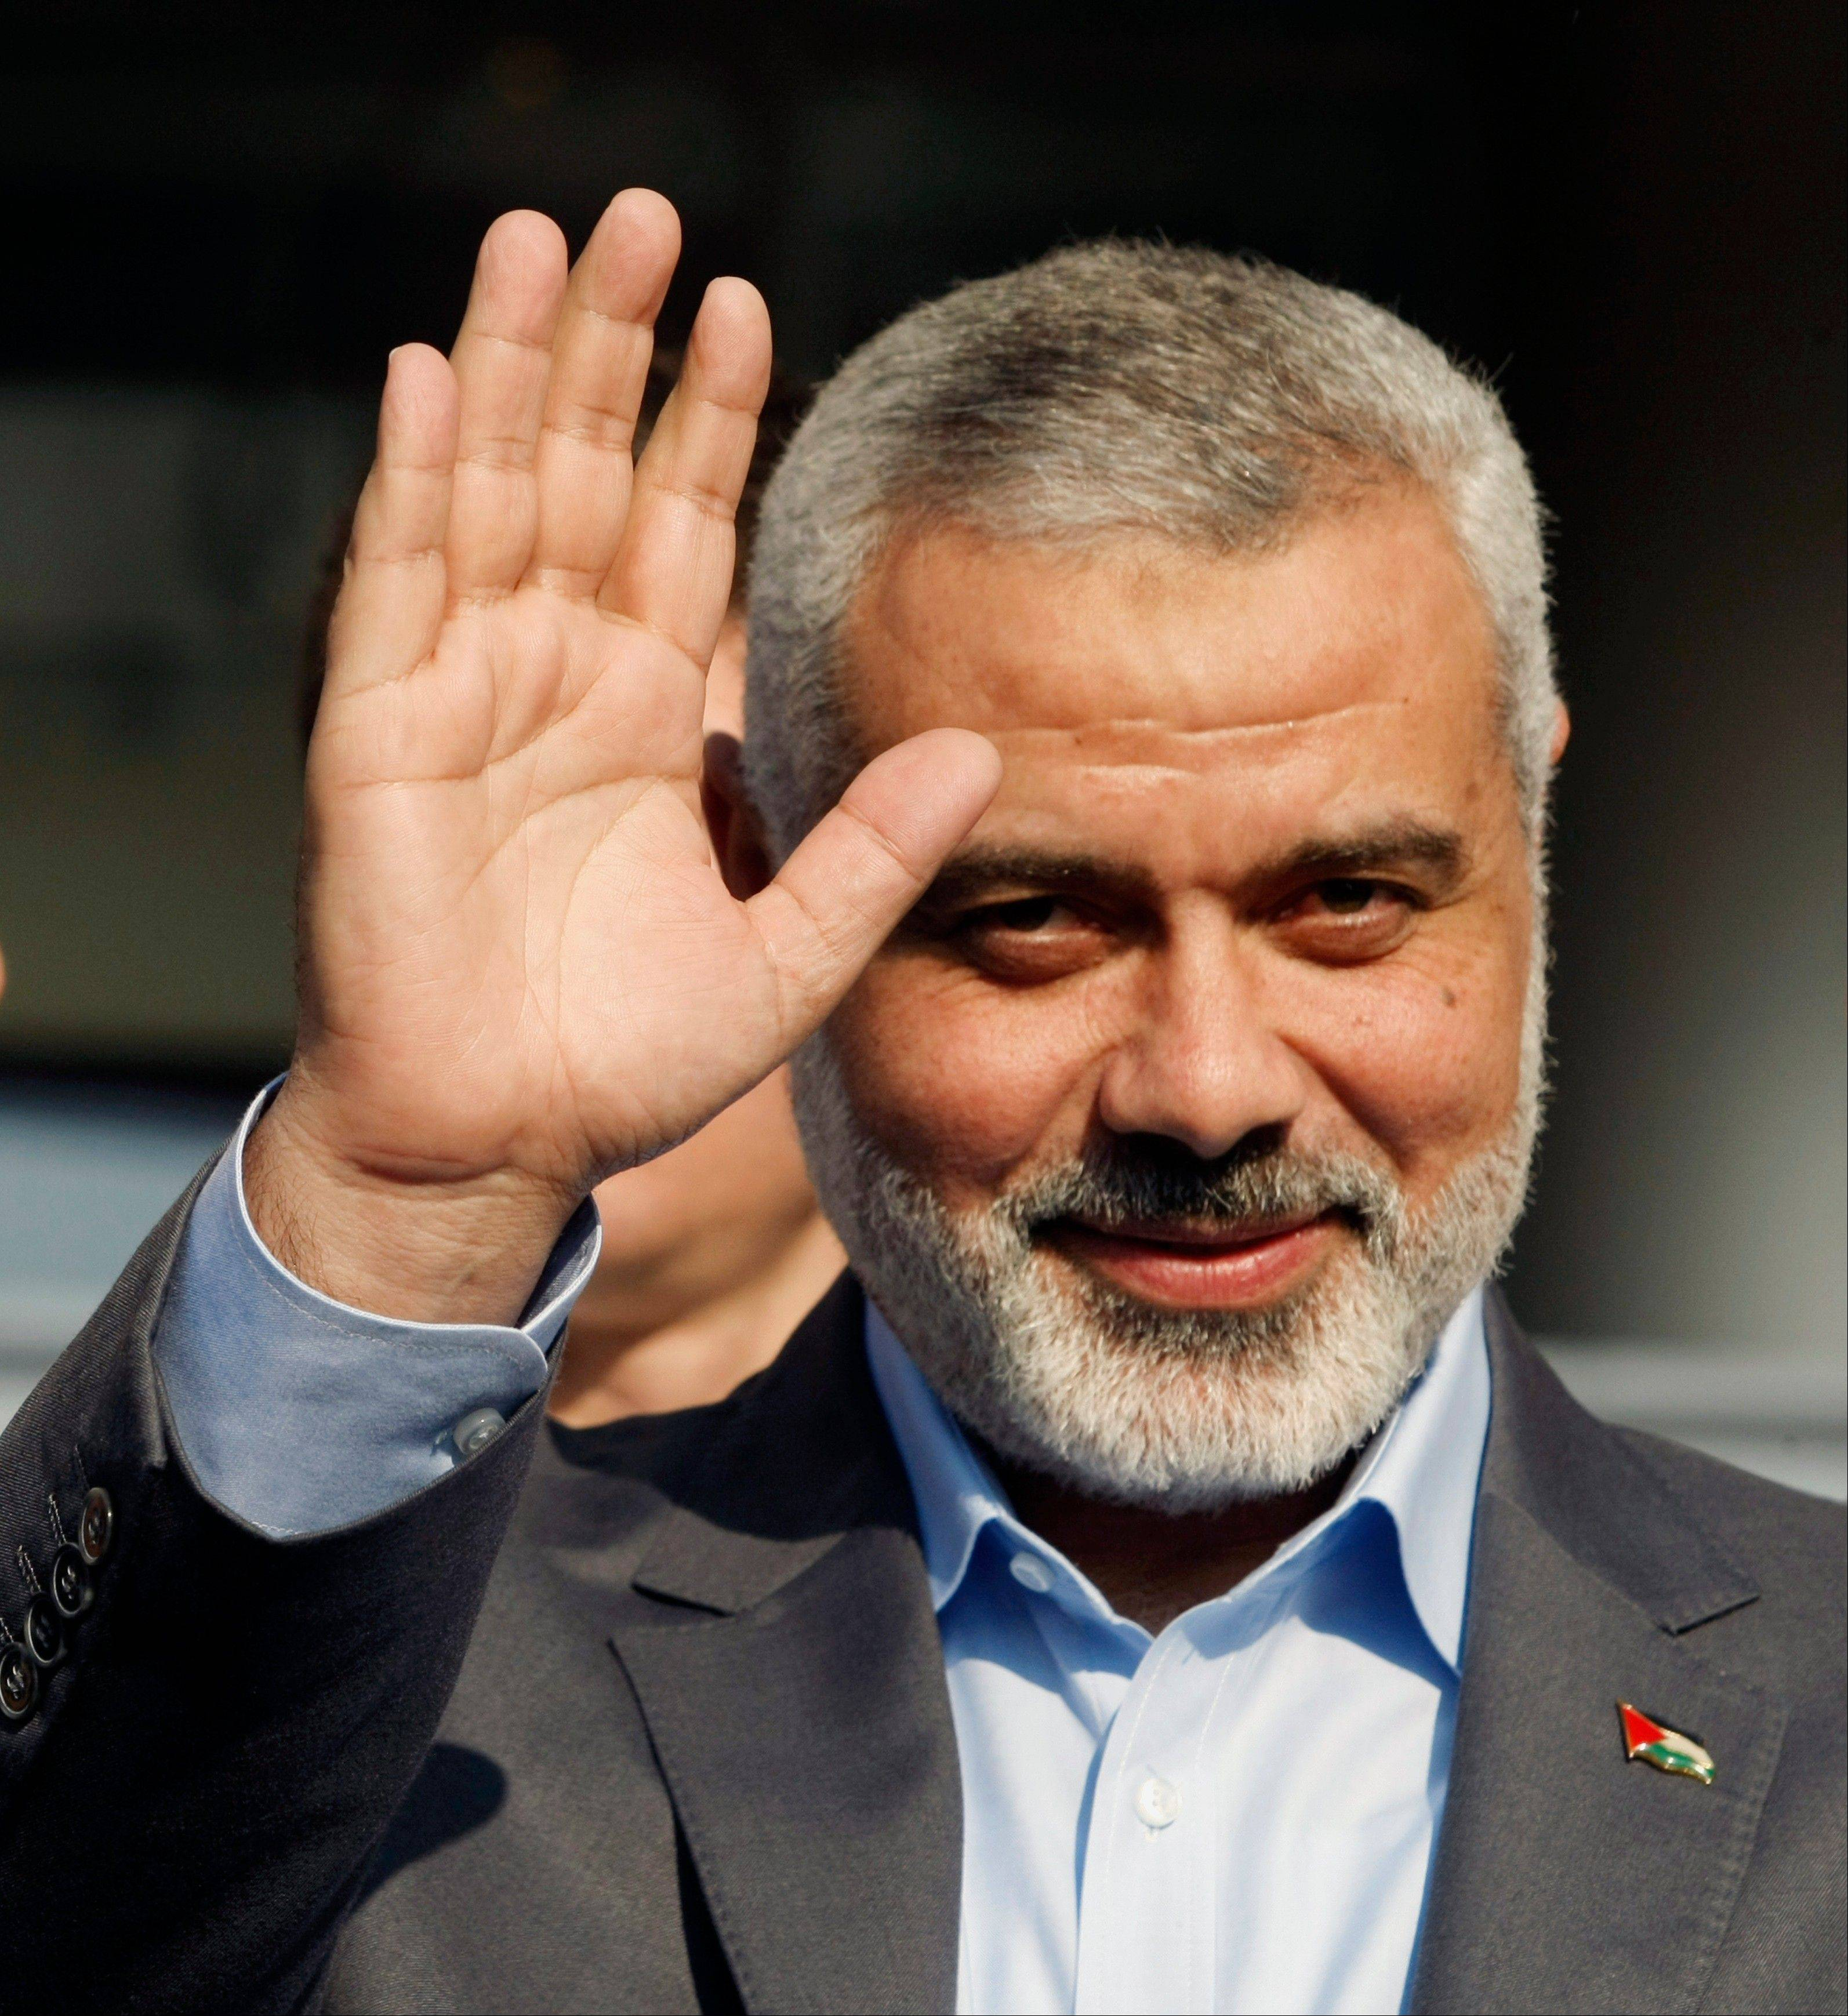 Gaza Strip Hamas Premier Ismail Haniyeh. A Palestinian official said Thursday, July 5, 2012 that Gaza's prime minister will head to Cairo within the next two weeks to meet with Egypt's new Islamist president, who has close ties with the territory's Hamas rulers.